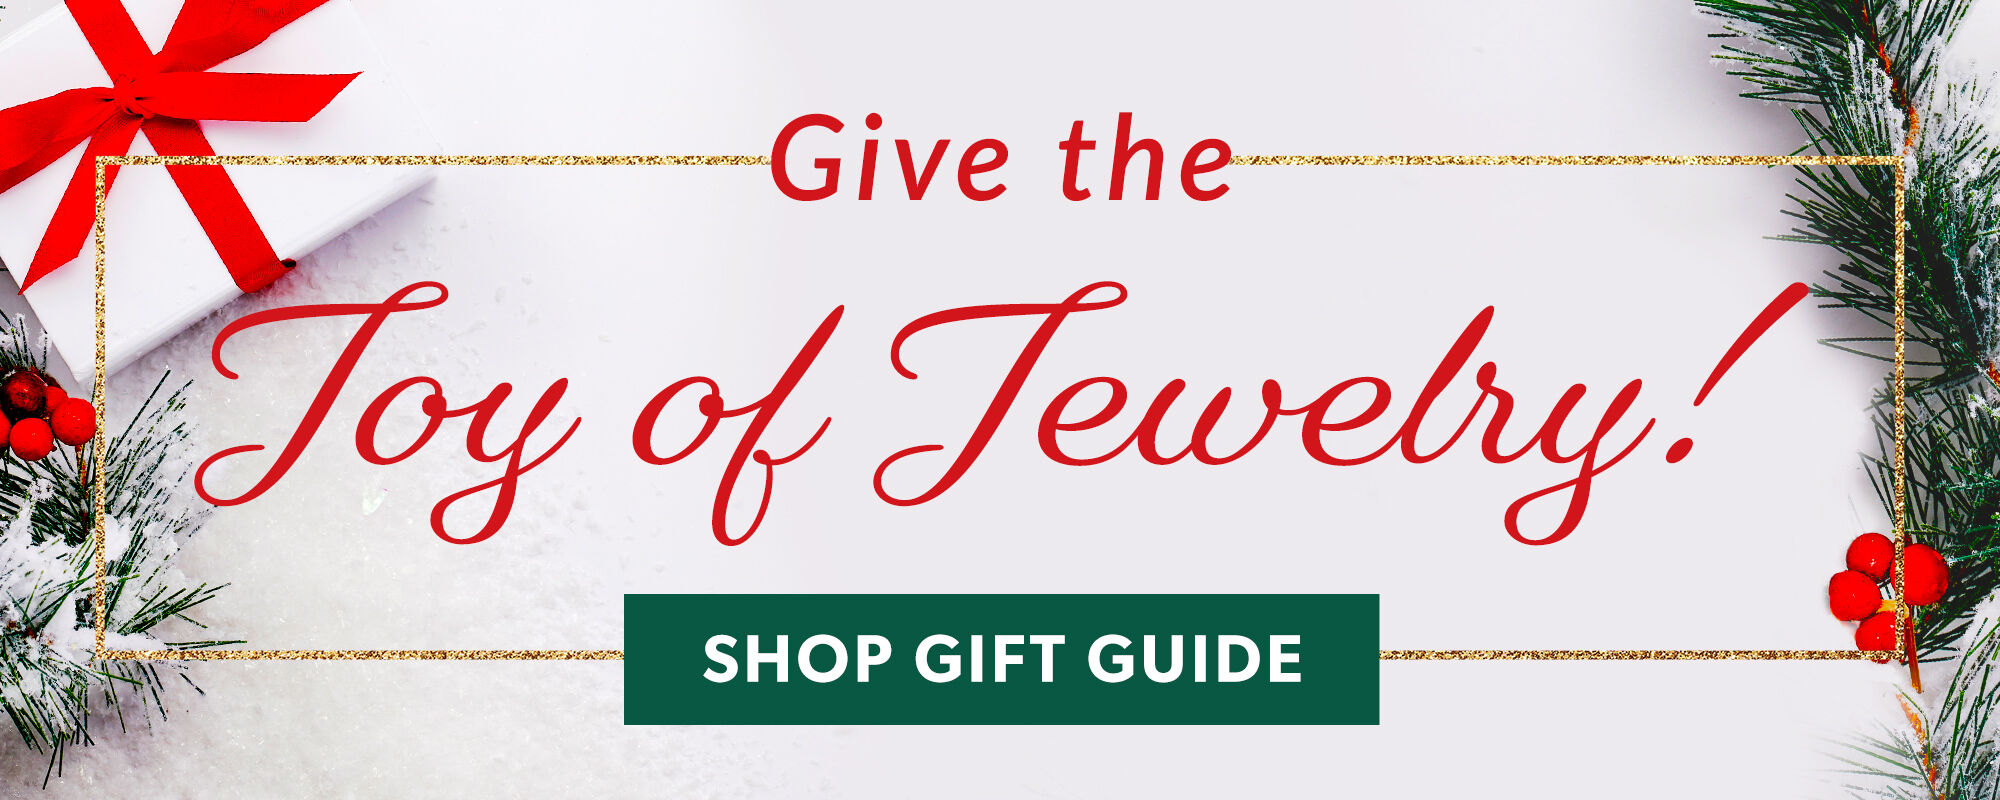 Give The Joy Of Jewelry! Shop The Gift Guide